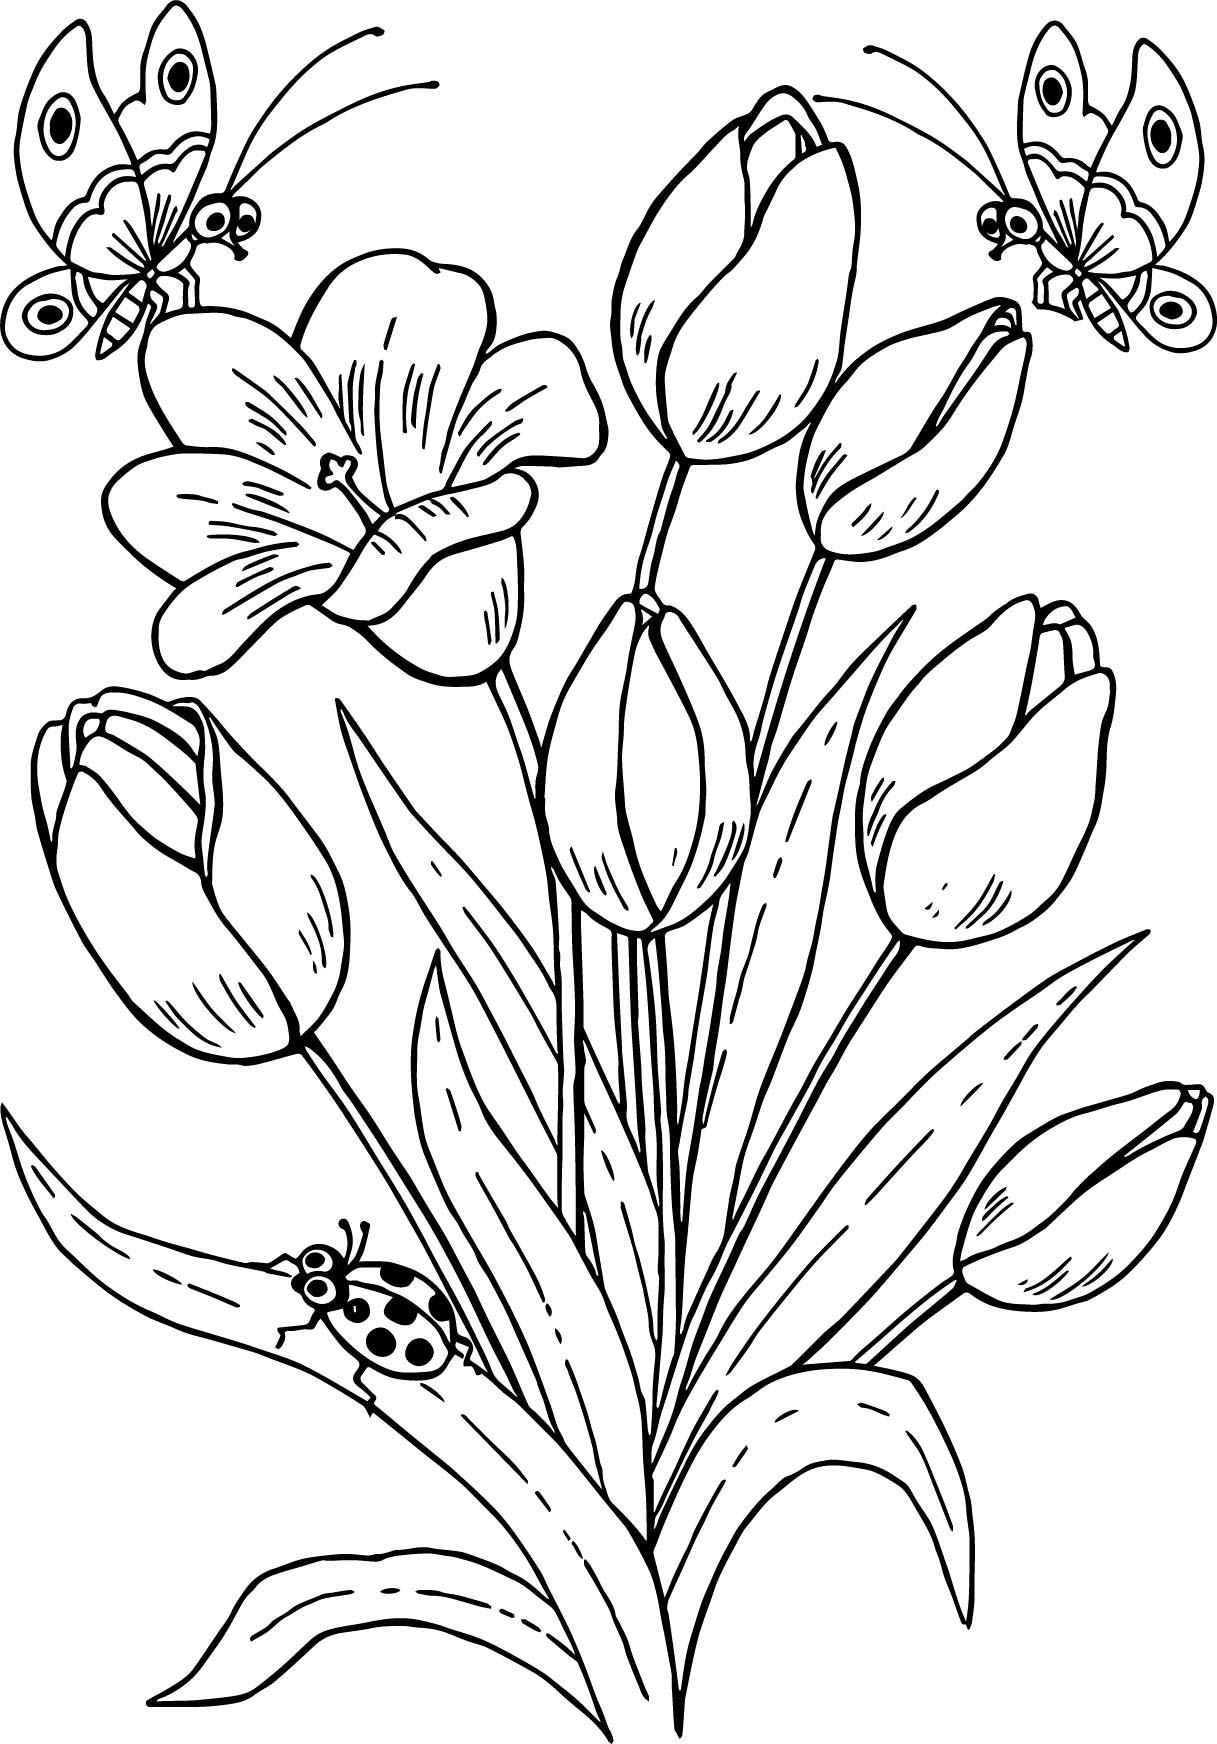 1217x1744 Tulip Coloring Pages Free Draw To Color